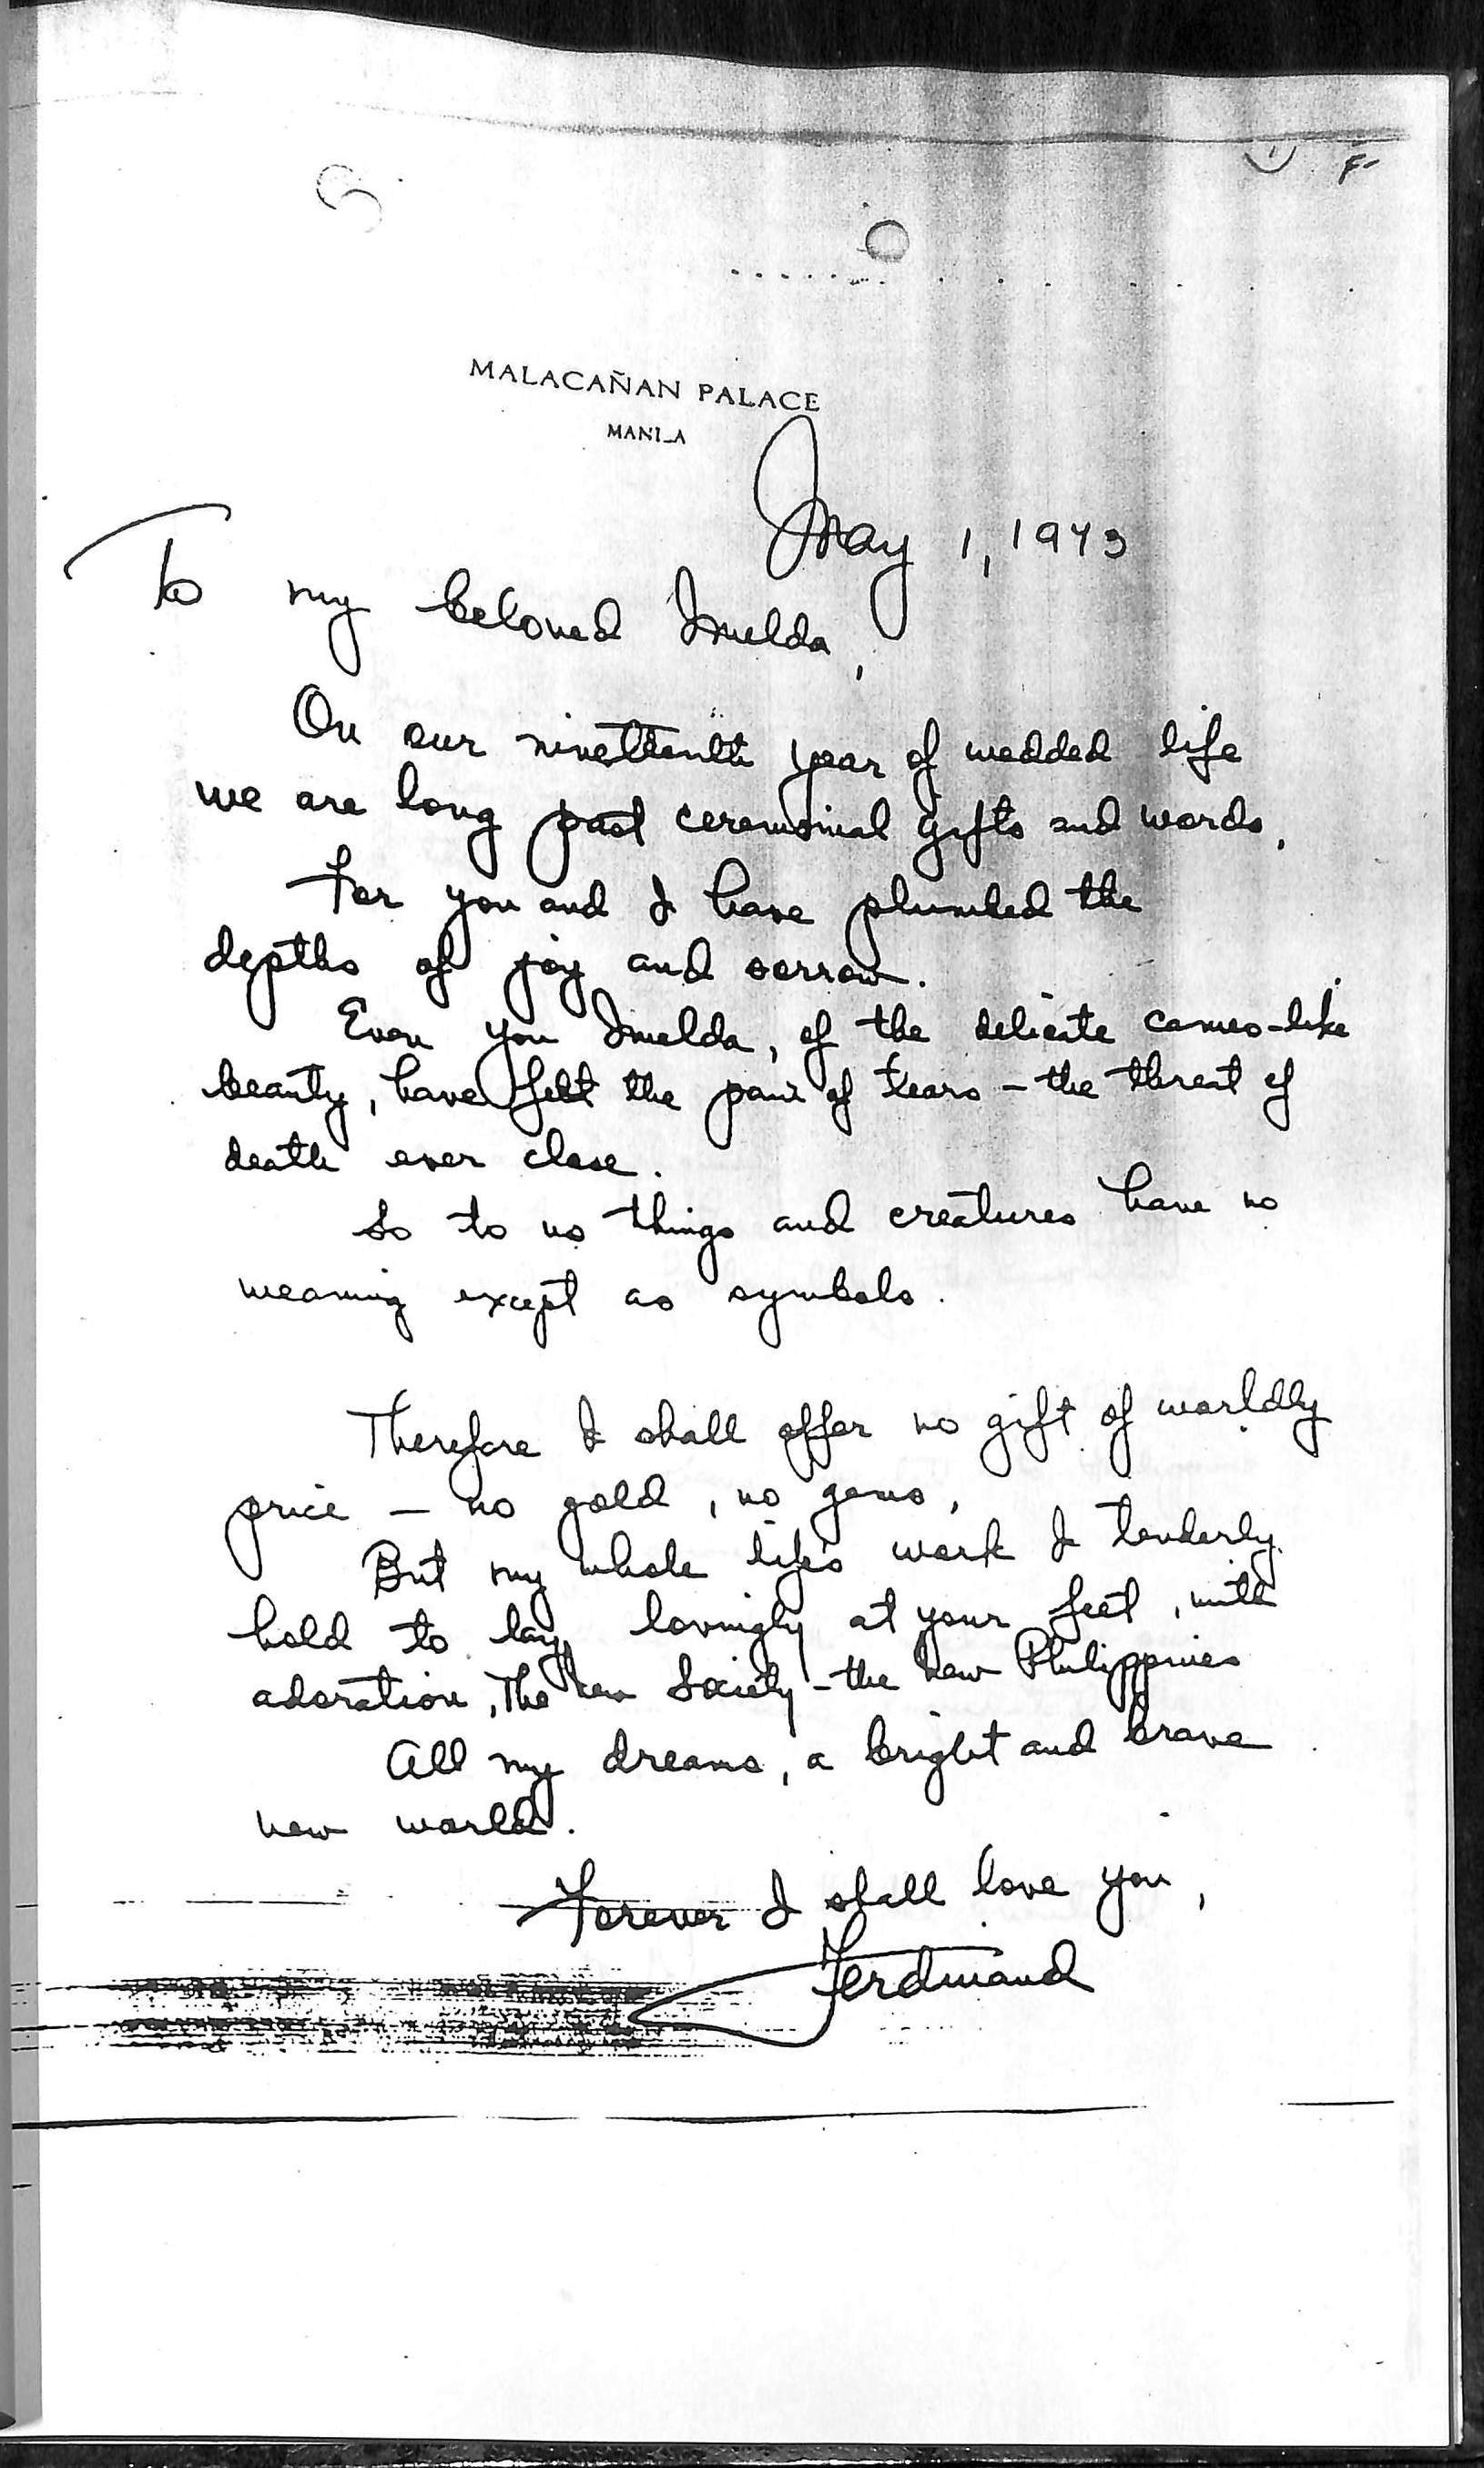 1973 Marcos Diary Black Book_Page_078.jpg